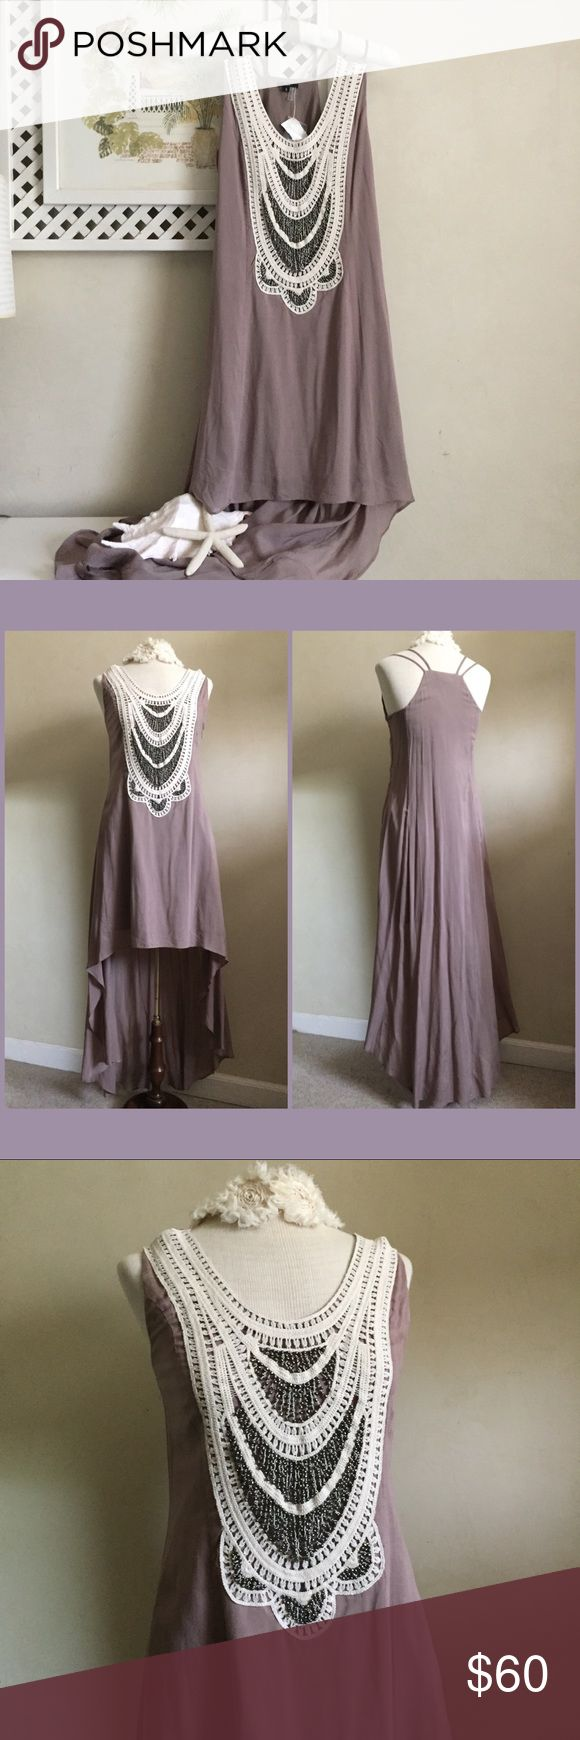 Stunning Beaded Tunic Dress Absolutely beautiful beaded dress with high-low hemline in mauve color. Brand new with tag. Paid $60 for it and would like to get as much of return here after Poshmark commission. So I don't have much wiggle room for negotiation. Fora Dresses High Low